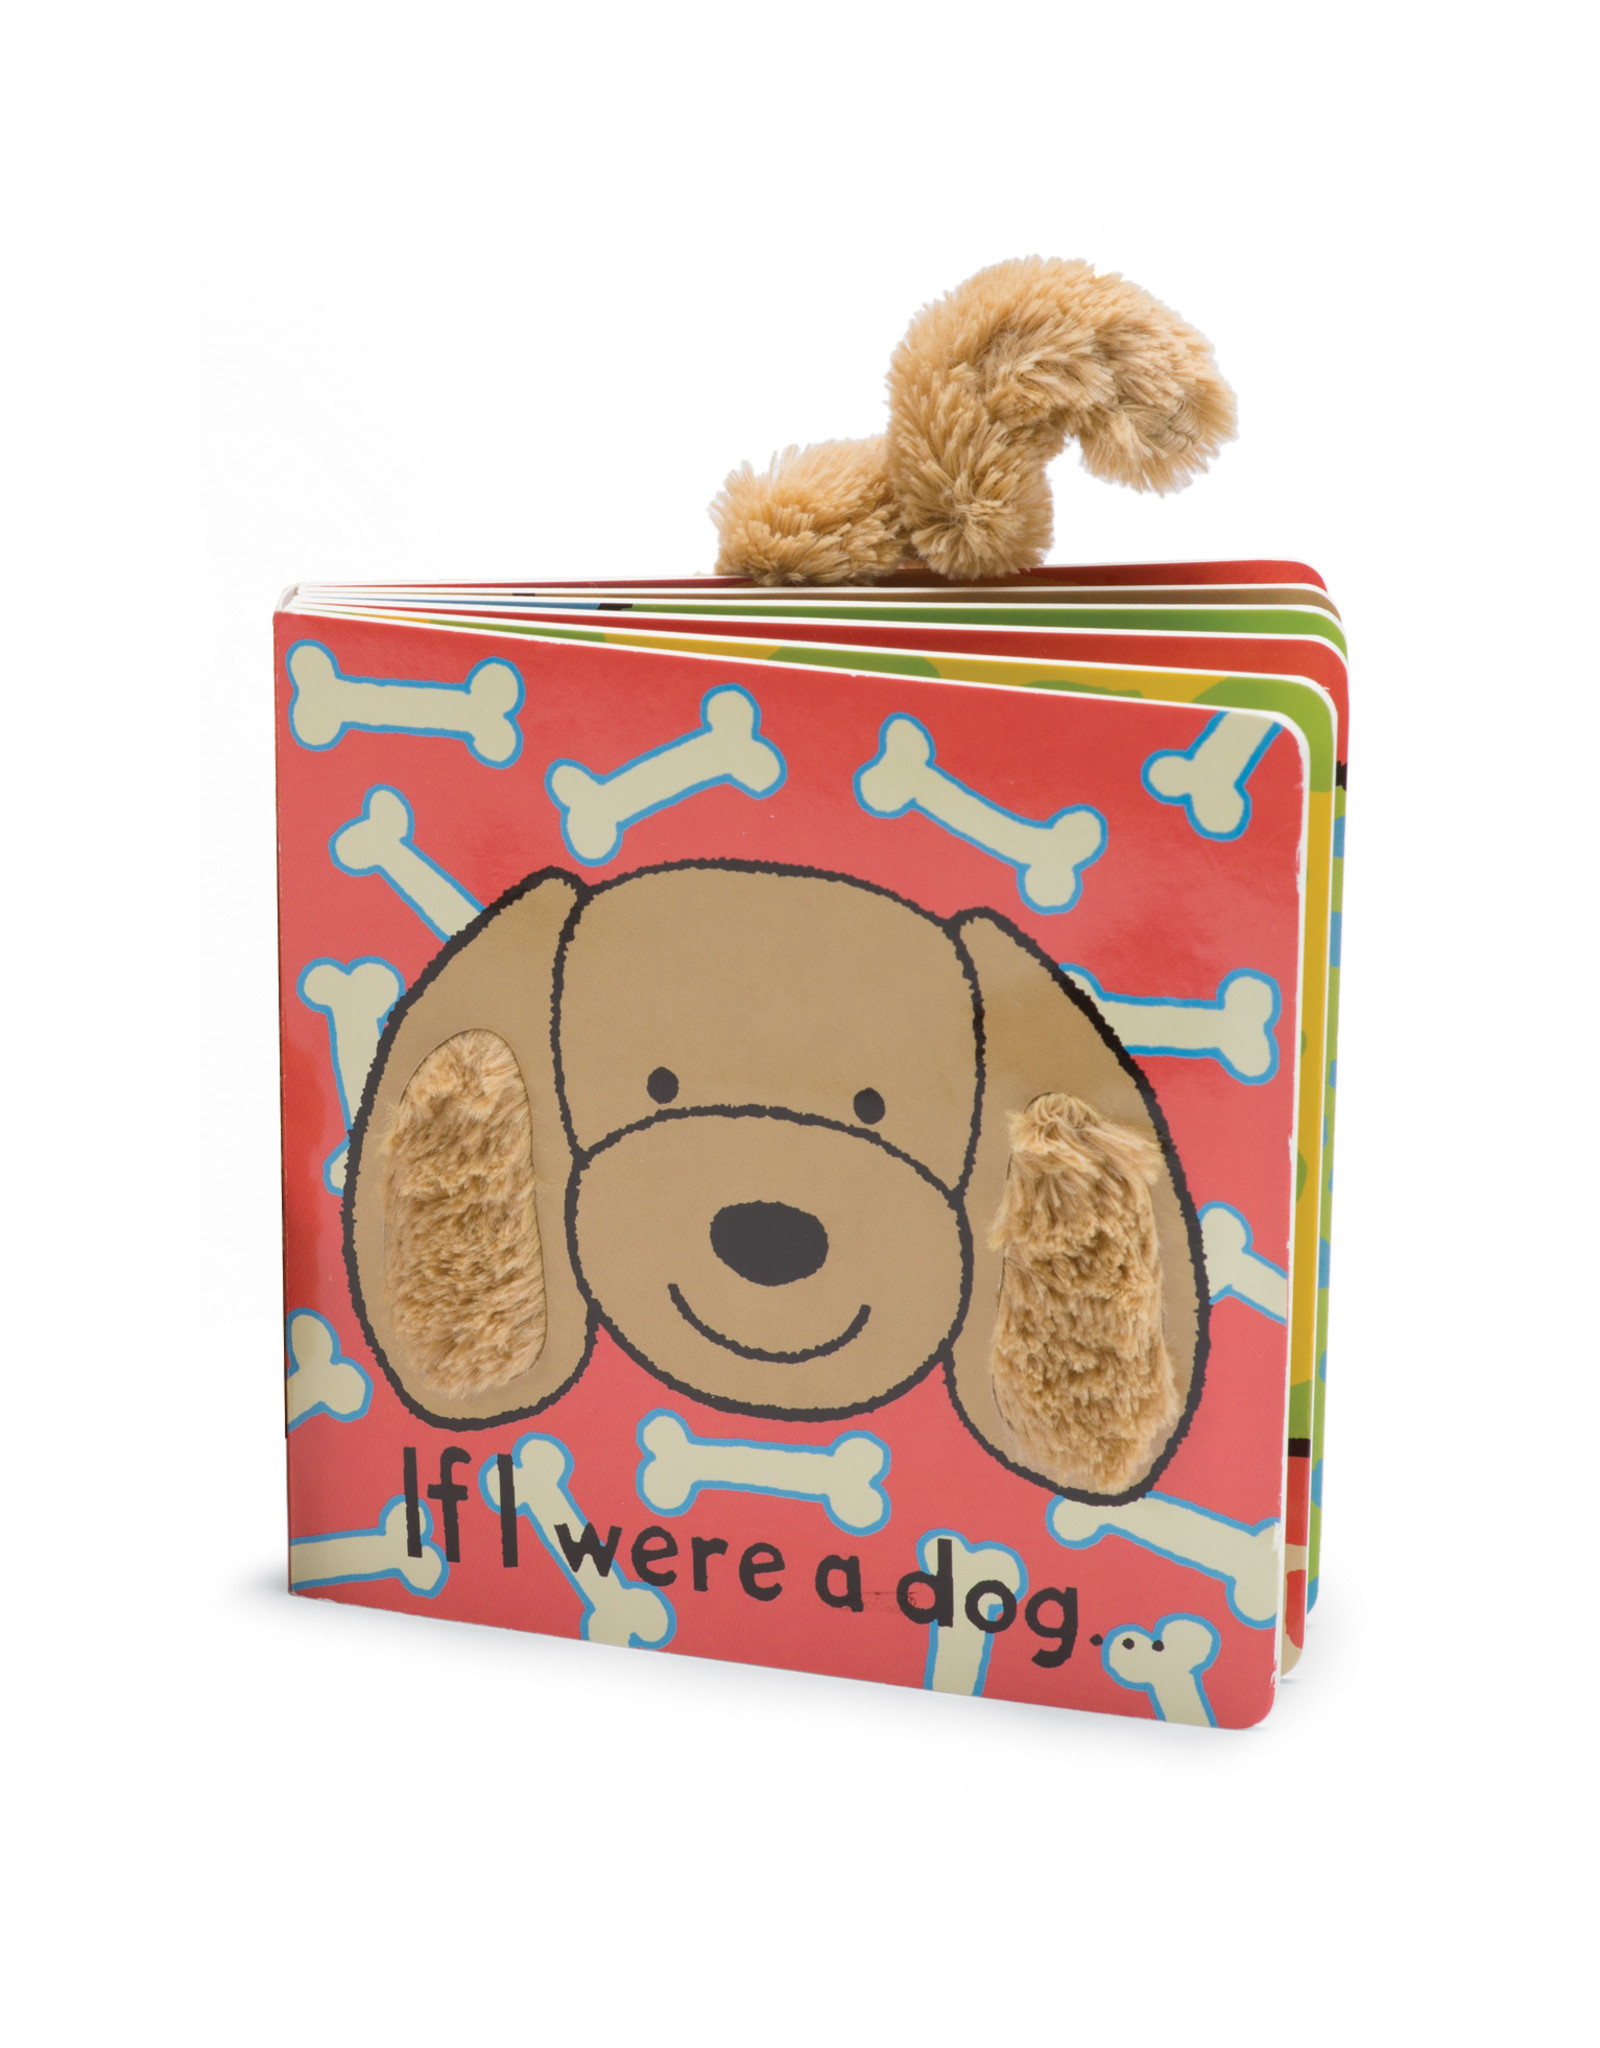 Jellycat Book, If I Were a Dog